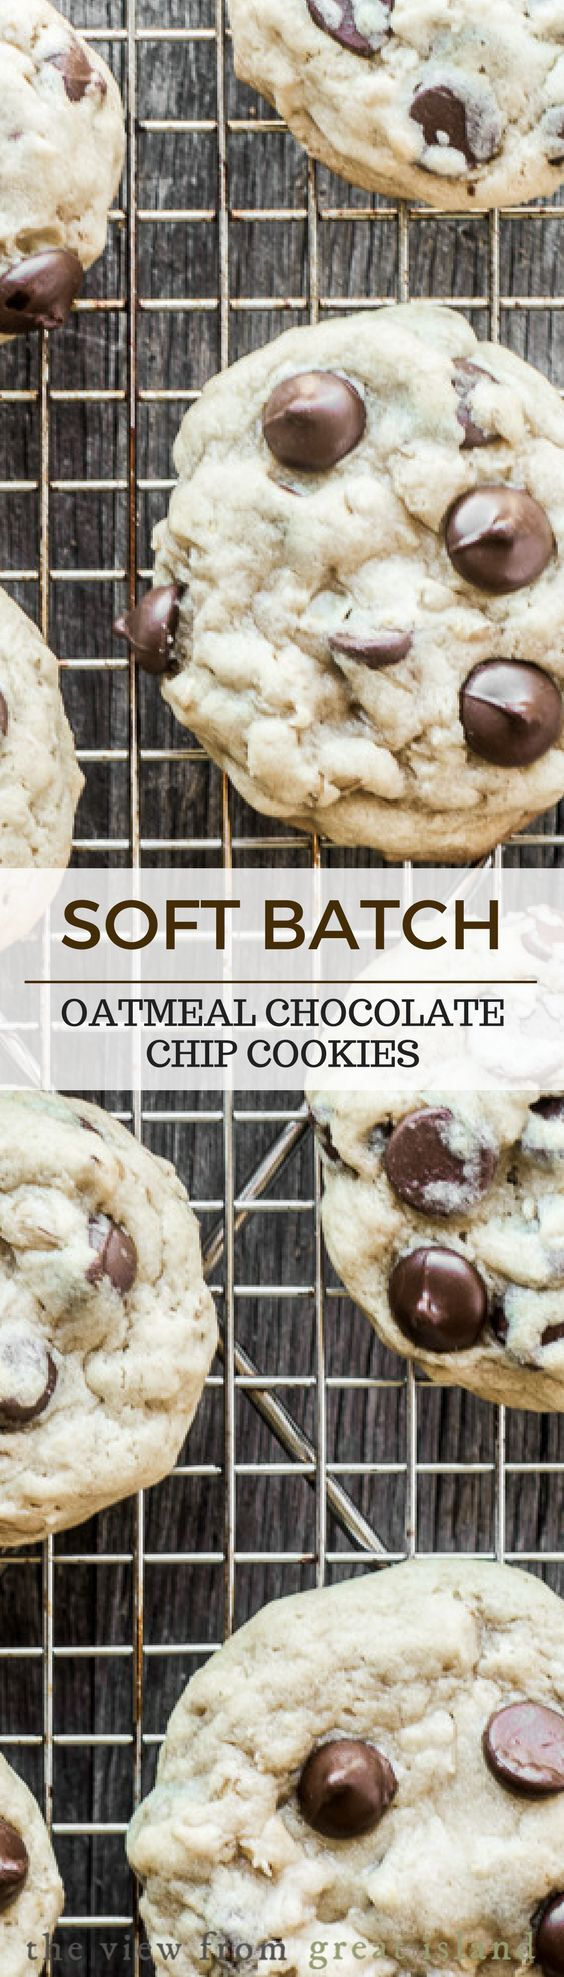 Soft Batch Oatmeal Chocolate Chip Cookies are the ultimate back to school treat, whether you pack them in a lunch, use them as a homework bribe, or just indulge in some 'me time' after the bus has pulled away.